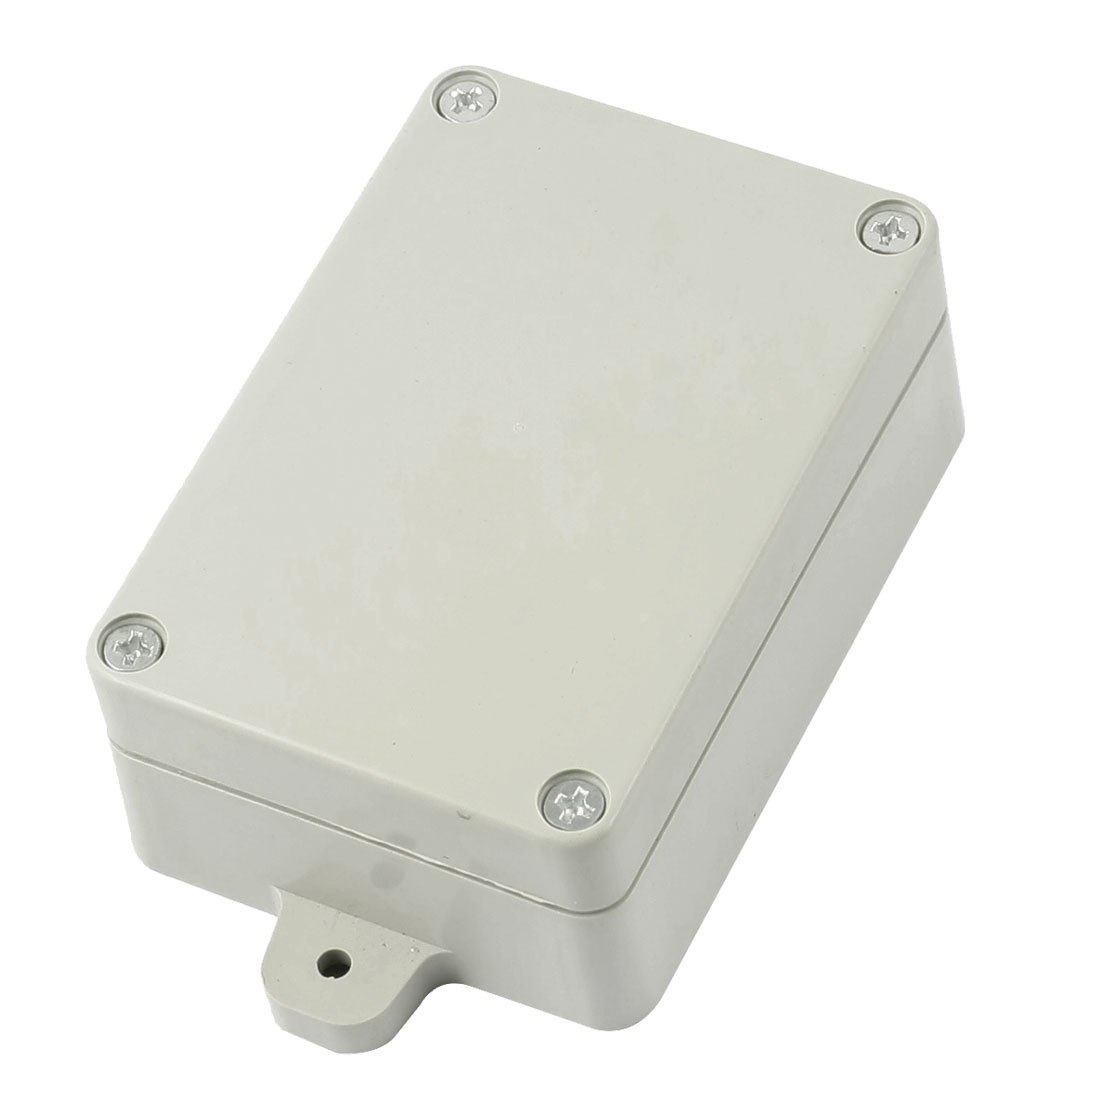 85mm x 60mm x 33mm Surface Screw Mount Dustproof IP65 Plastic Sealed Electronic Project Power Junction Enclosure Box Protection